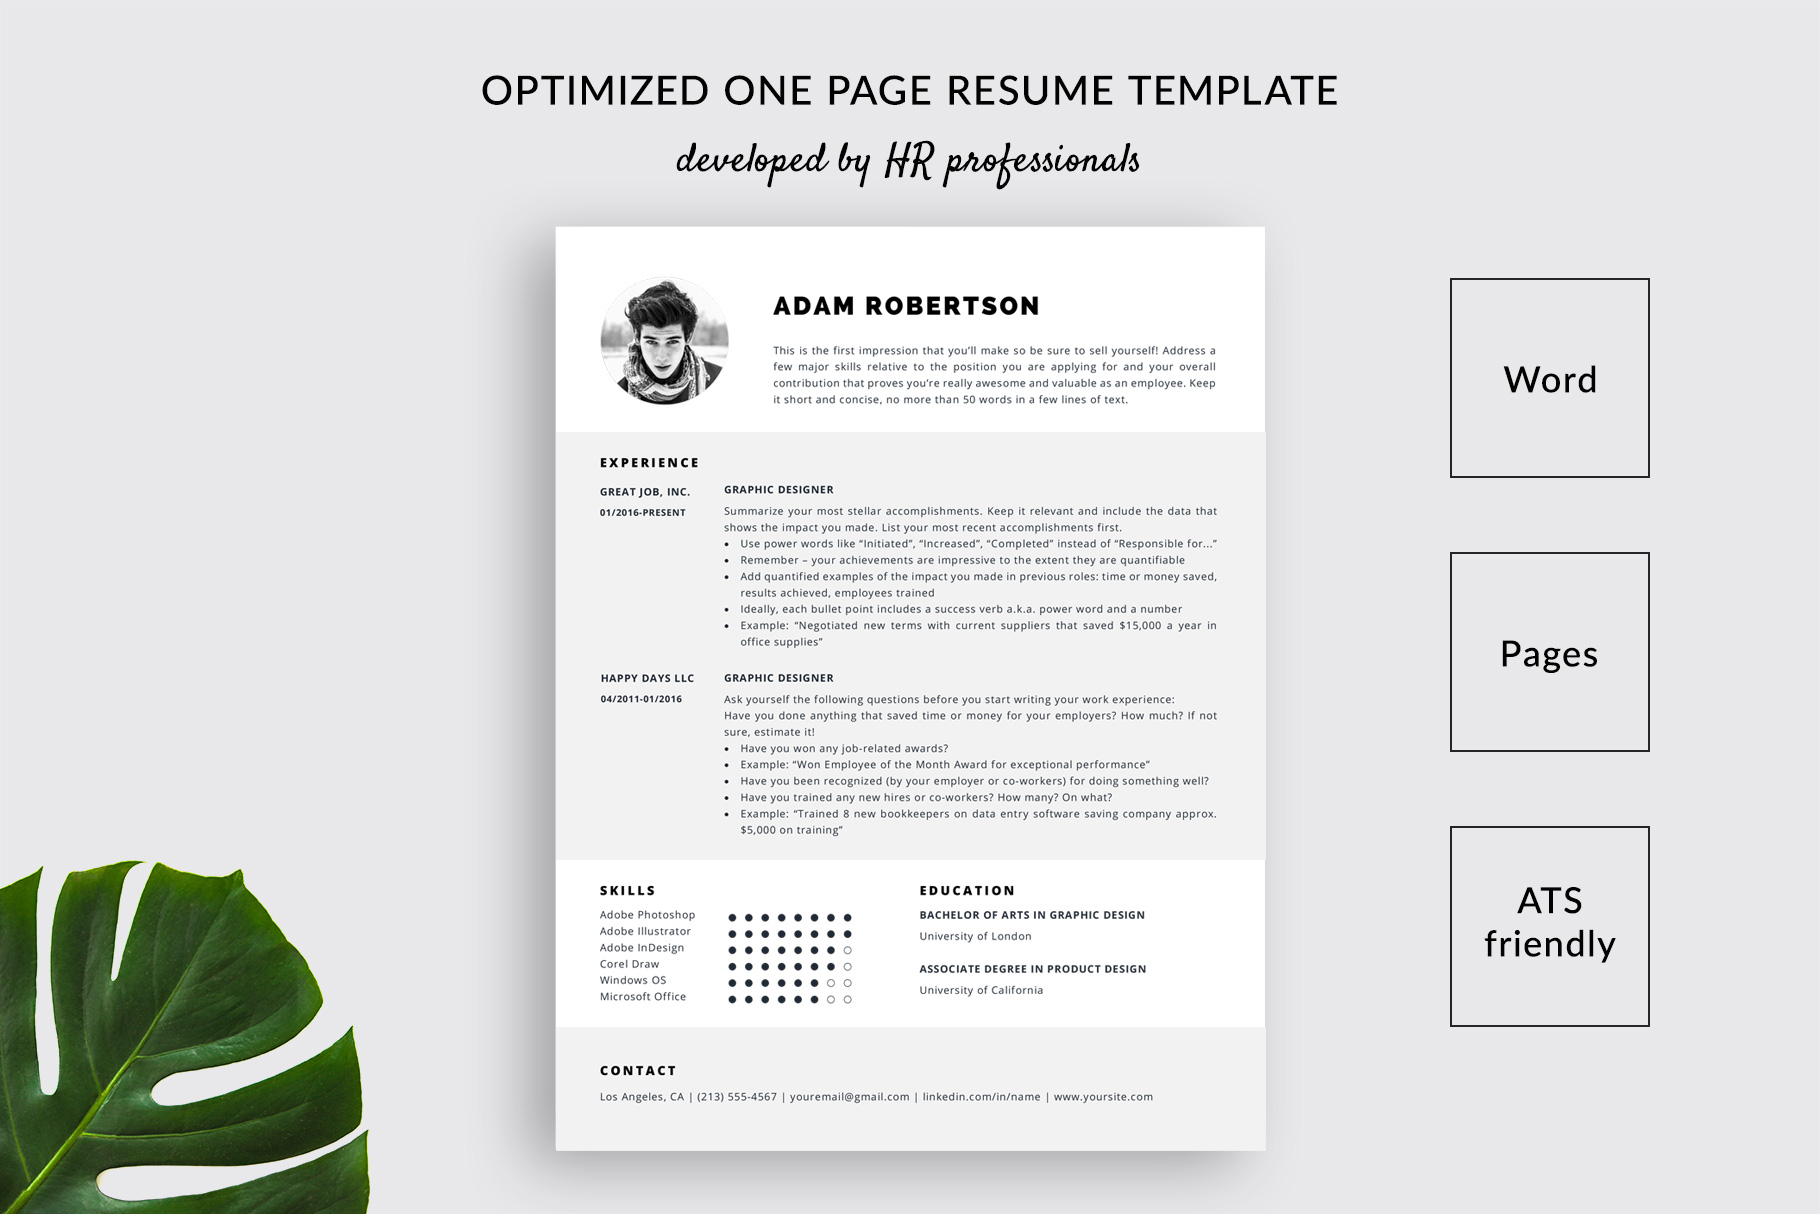 resume template and cover letter adam format ats friendly one templatehippo assembly line Resume Resume Format Ats Friendly